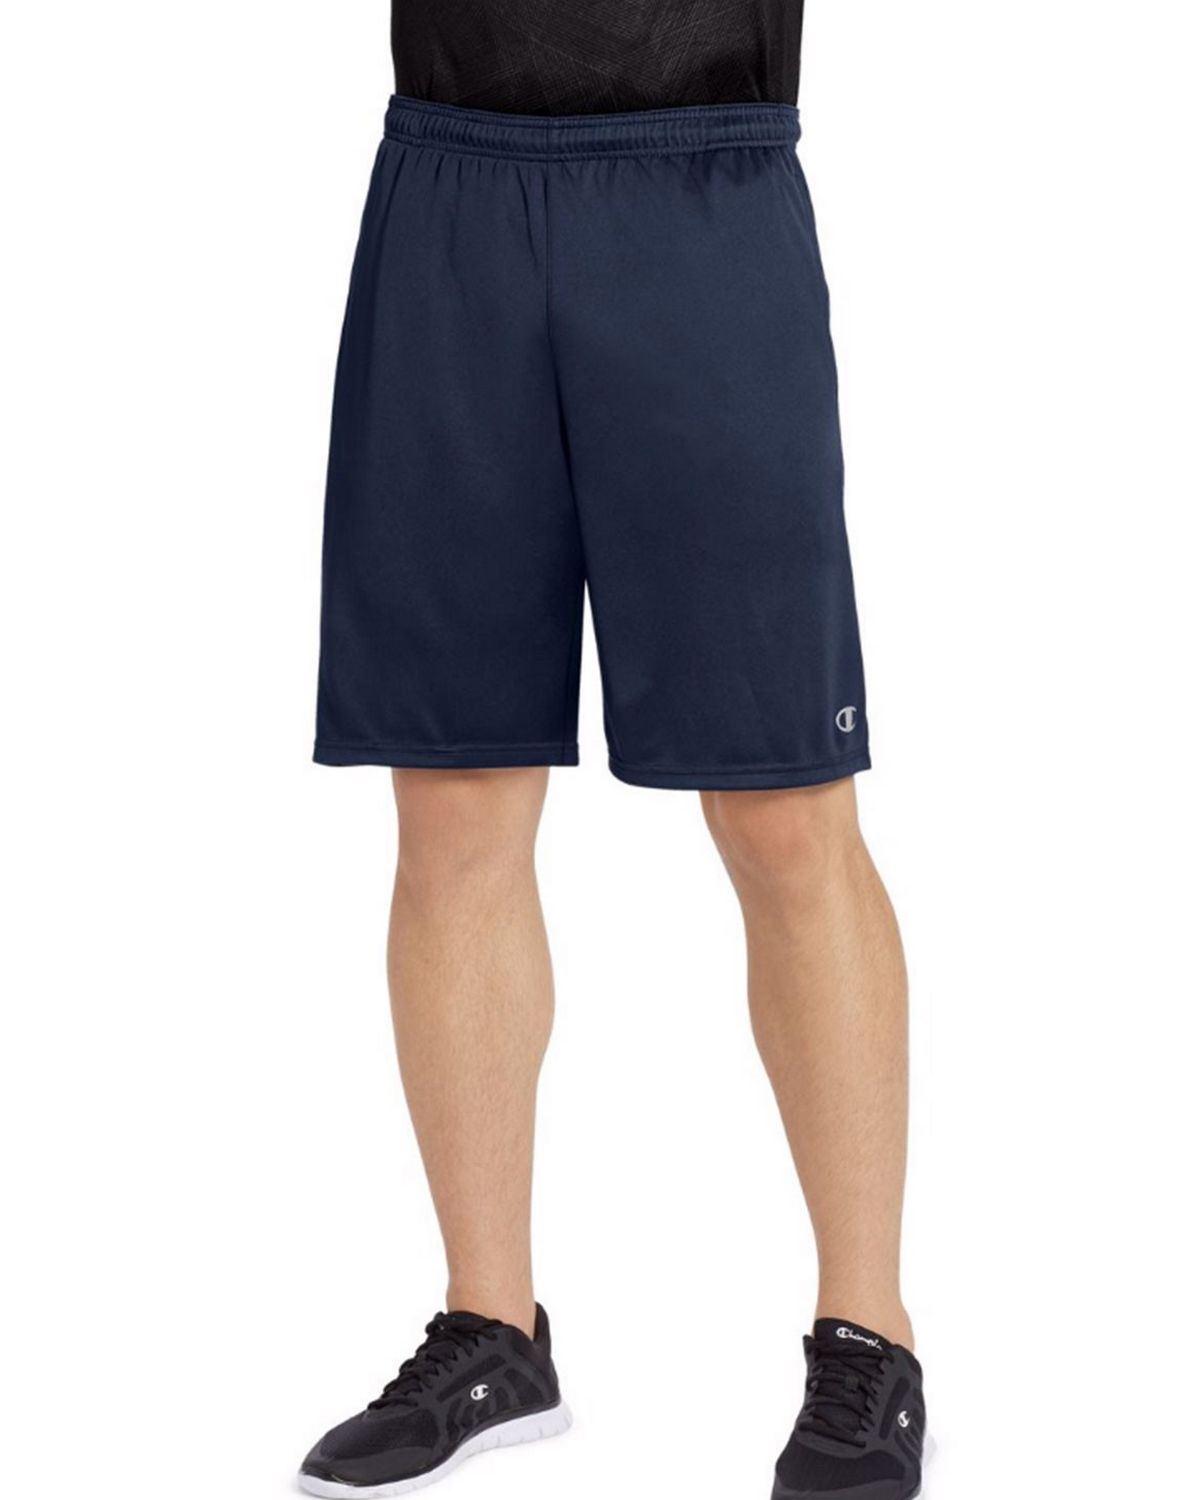 Champion 88125 Vapor Mens Shorts - Navy - M 88125